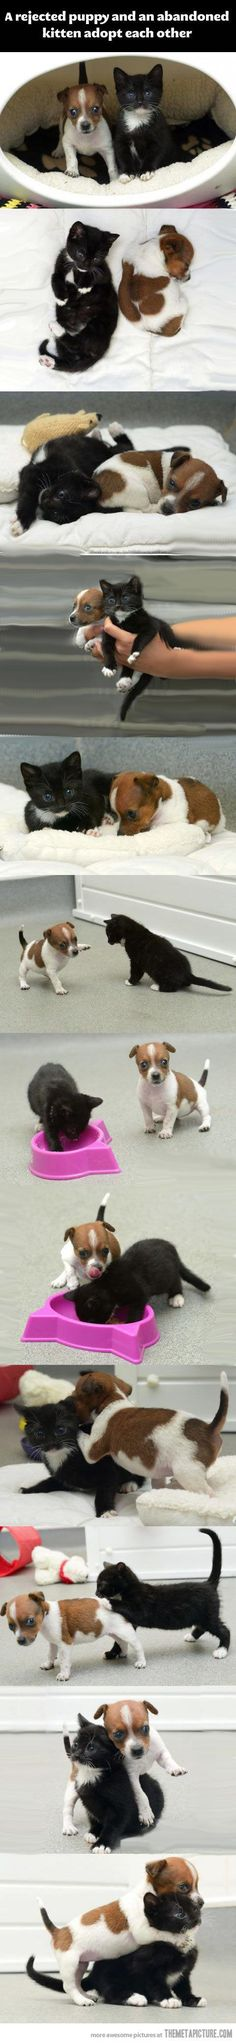 A rejected puppen and abandoned kitten adopt each other.